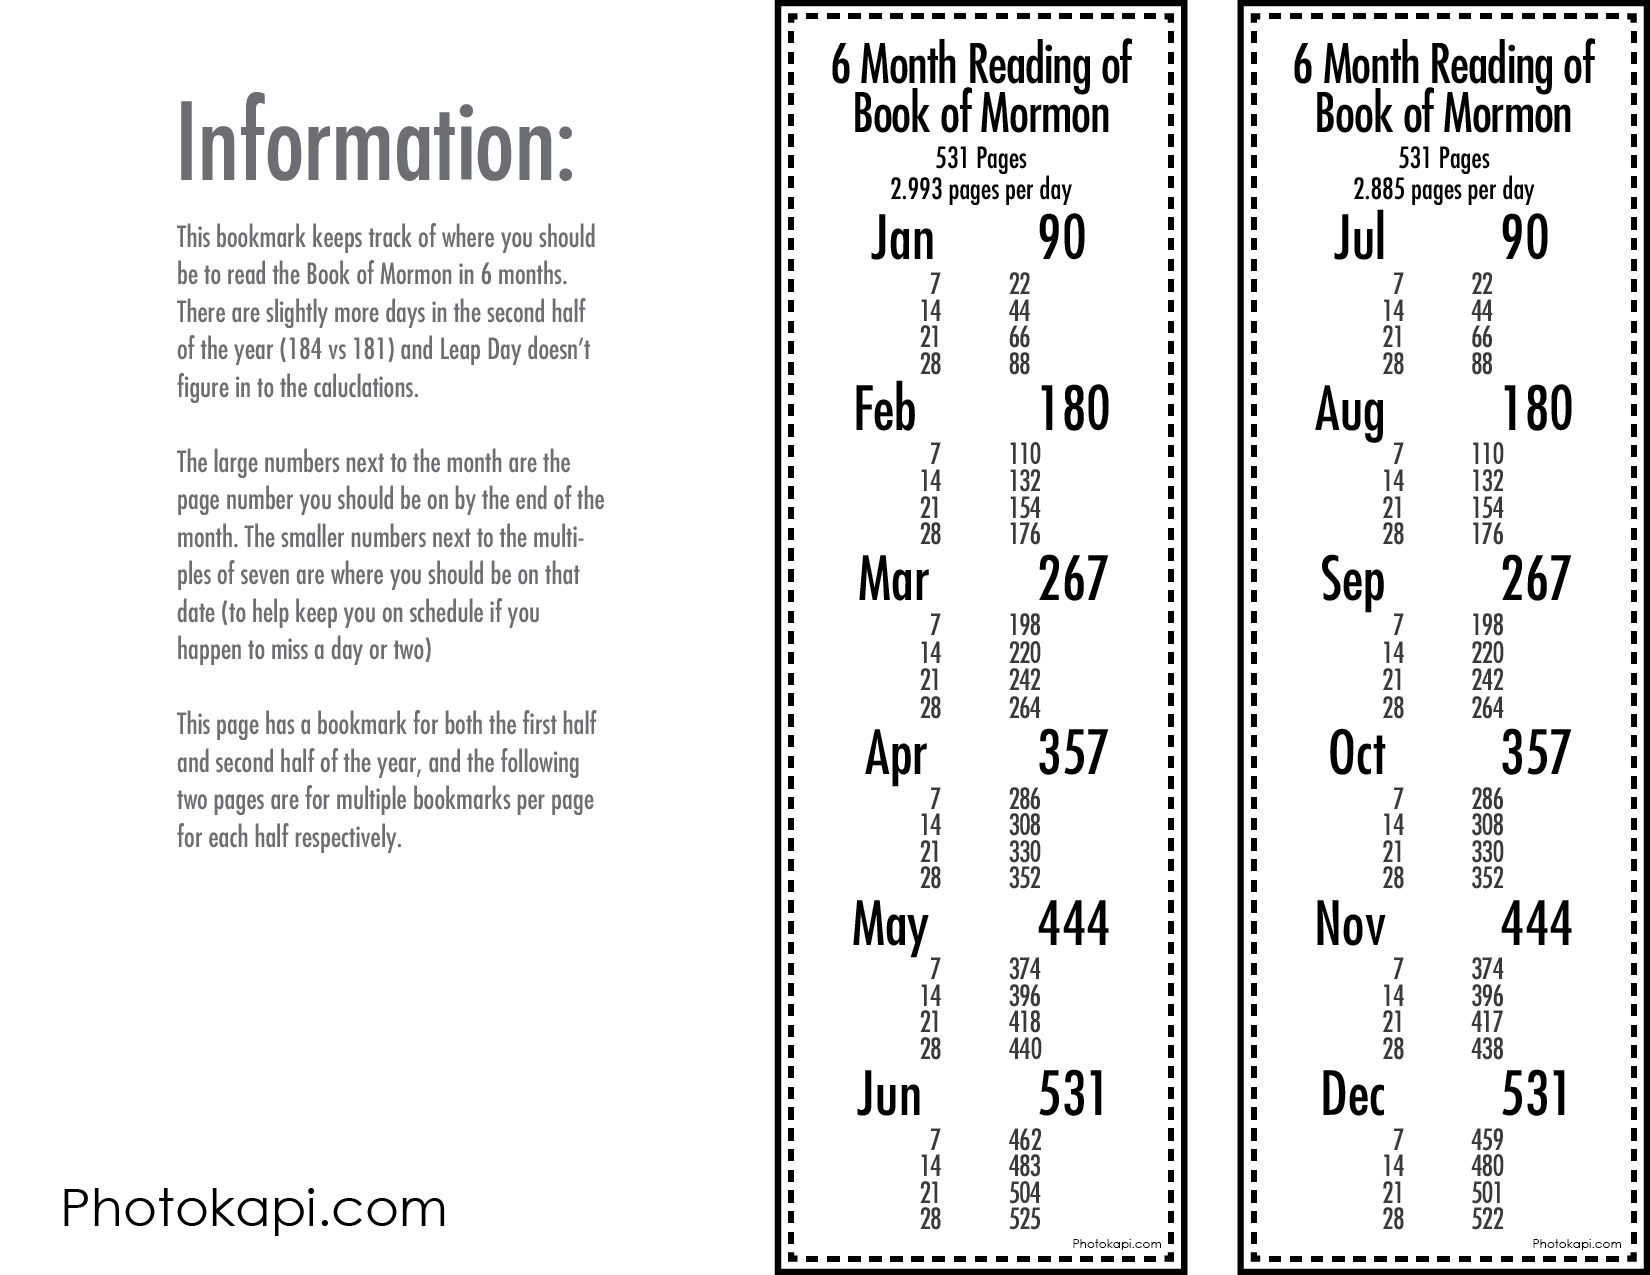 Instructions for reading the Book of Mormon in only 6 Months